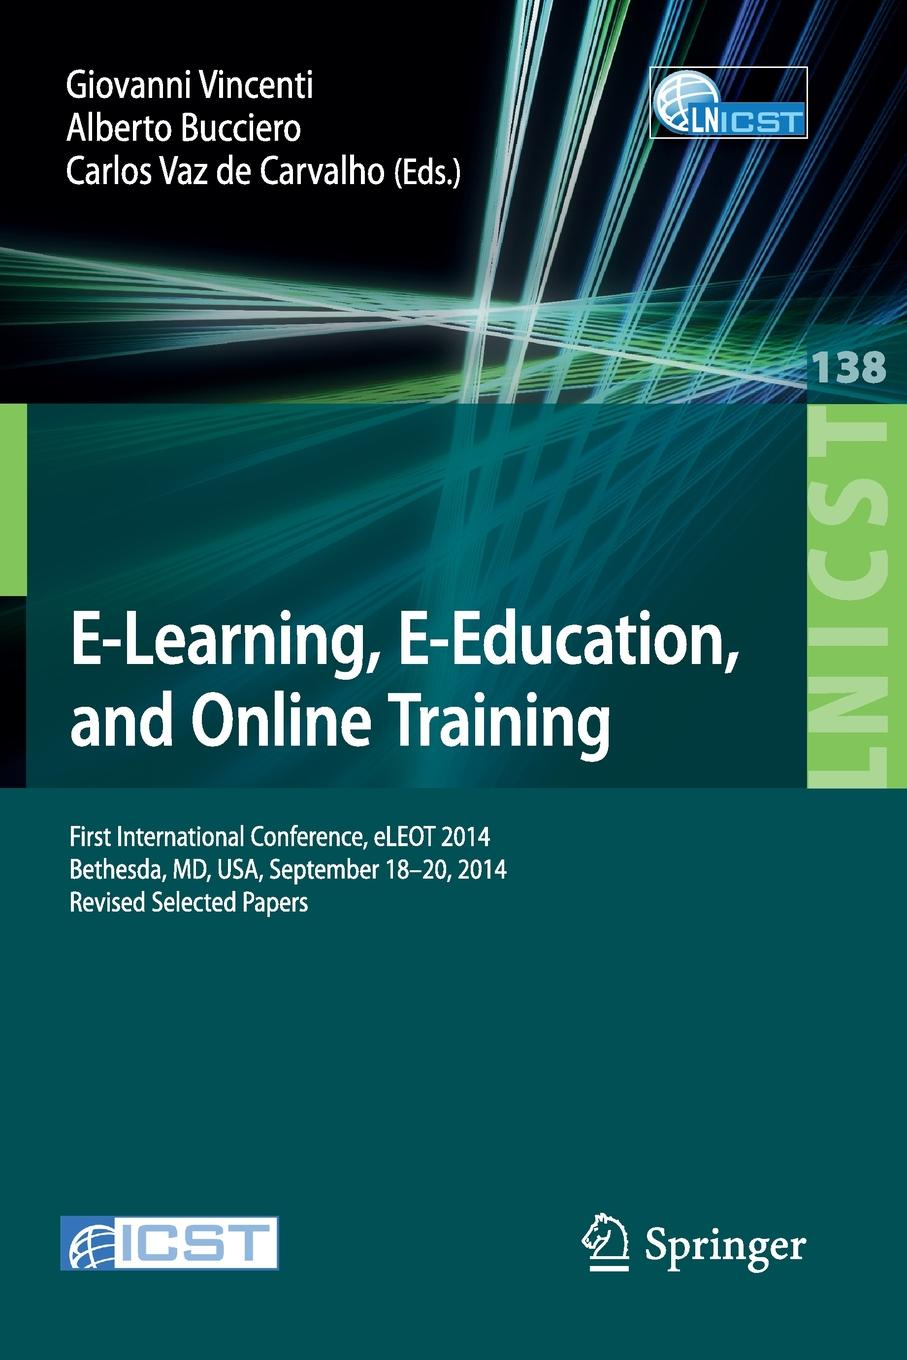 E-Learning, E-Education, and Online Training. First International Conference, eLEOT 2014, Bethesda, MD, USA, September 18-20, 2014, Revised Selected Papers велосипед merida juliet 20 md 2014